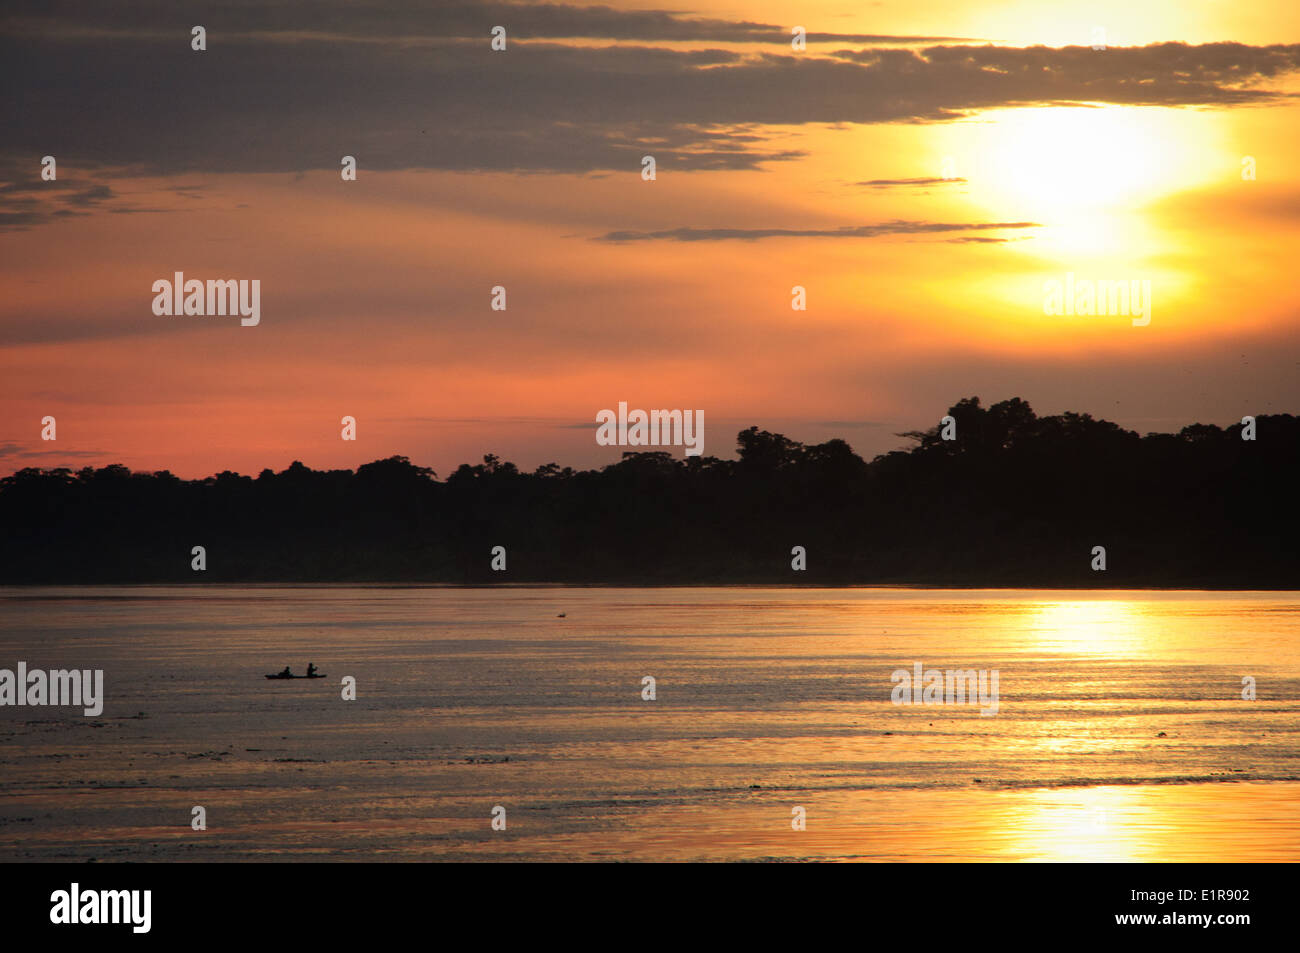 Little Boat on the Immense Peruvian Amazon River at Sunset - Stock Image